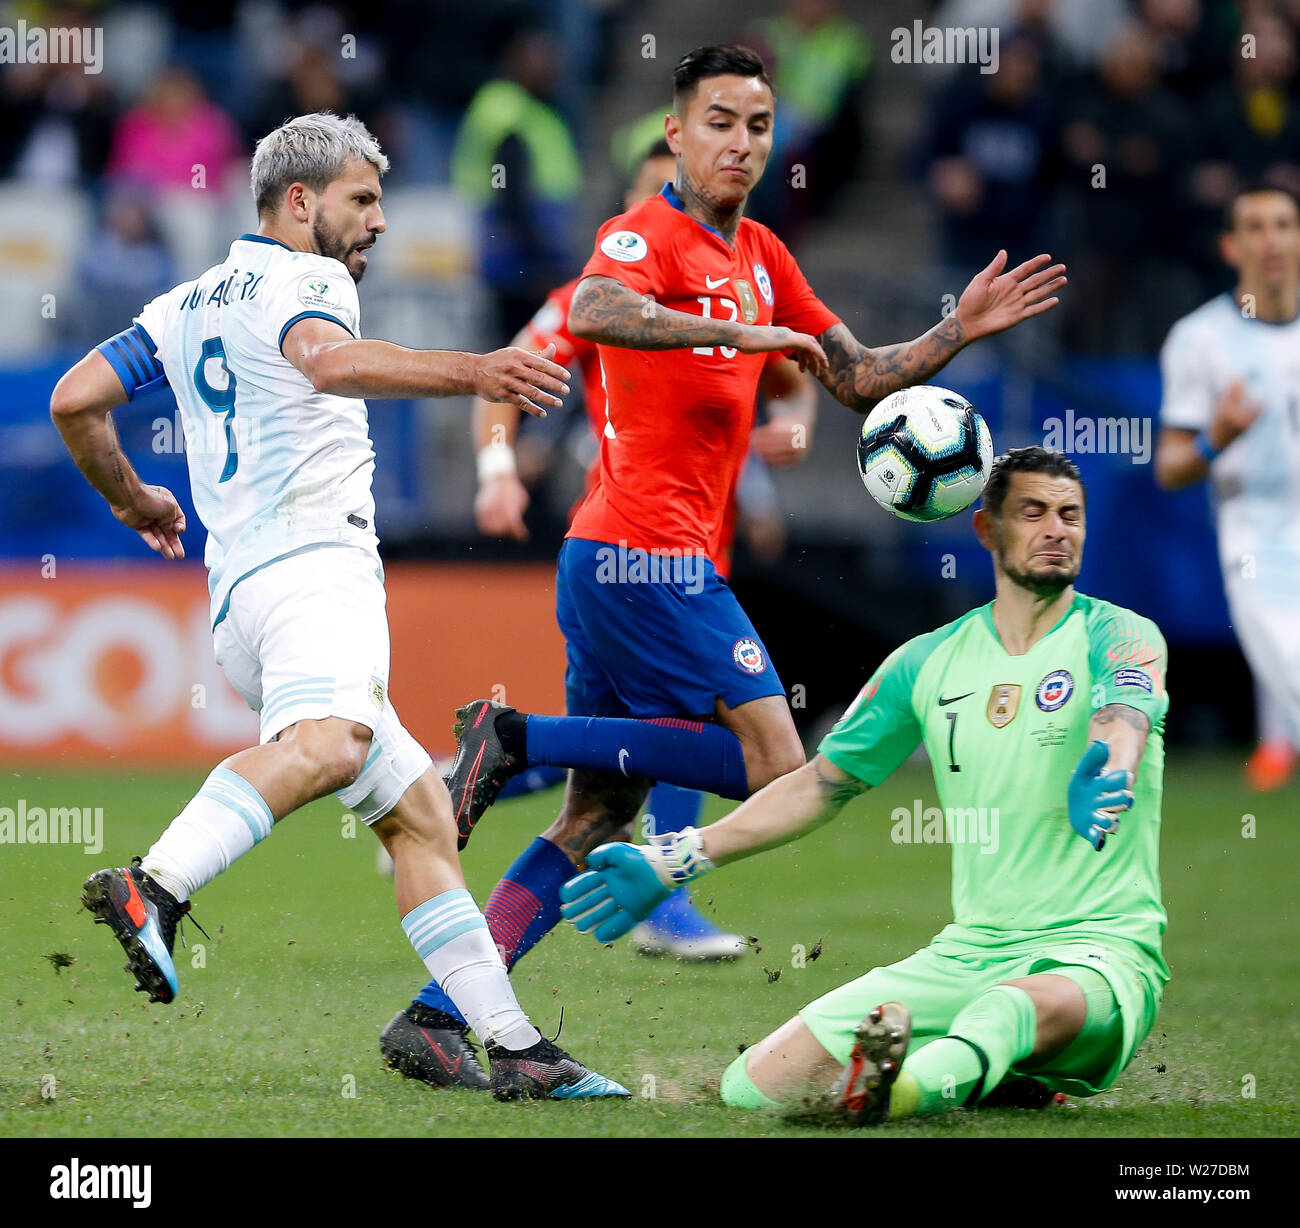 SÃO PAULO, SP - 06.07.2019: ARGENTINA VS. CHILE - Sergio Kun Aguero of Argentina kicks and Gabriel Arias of Chile defends during match between Argentina and Chile, valid for the dispute of the third place of Copa America 2019, held this Saturday (06) at the Corinthians Arena in São Paulo, SP. (Photo: Marcelo Machado de Melo/Fotoarena) - Stock Image